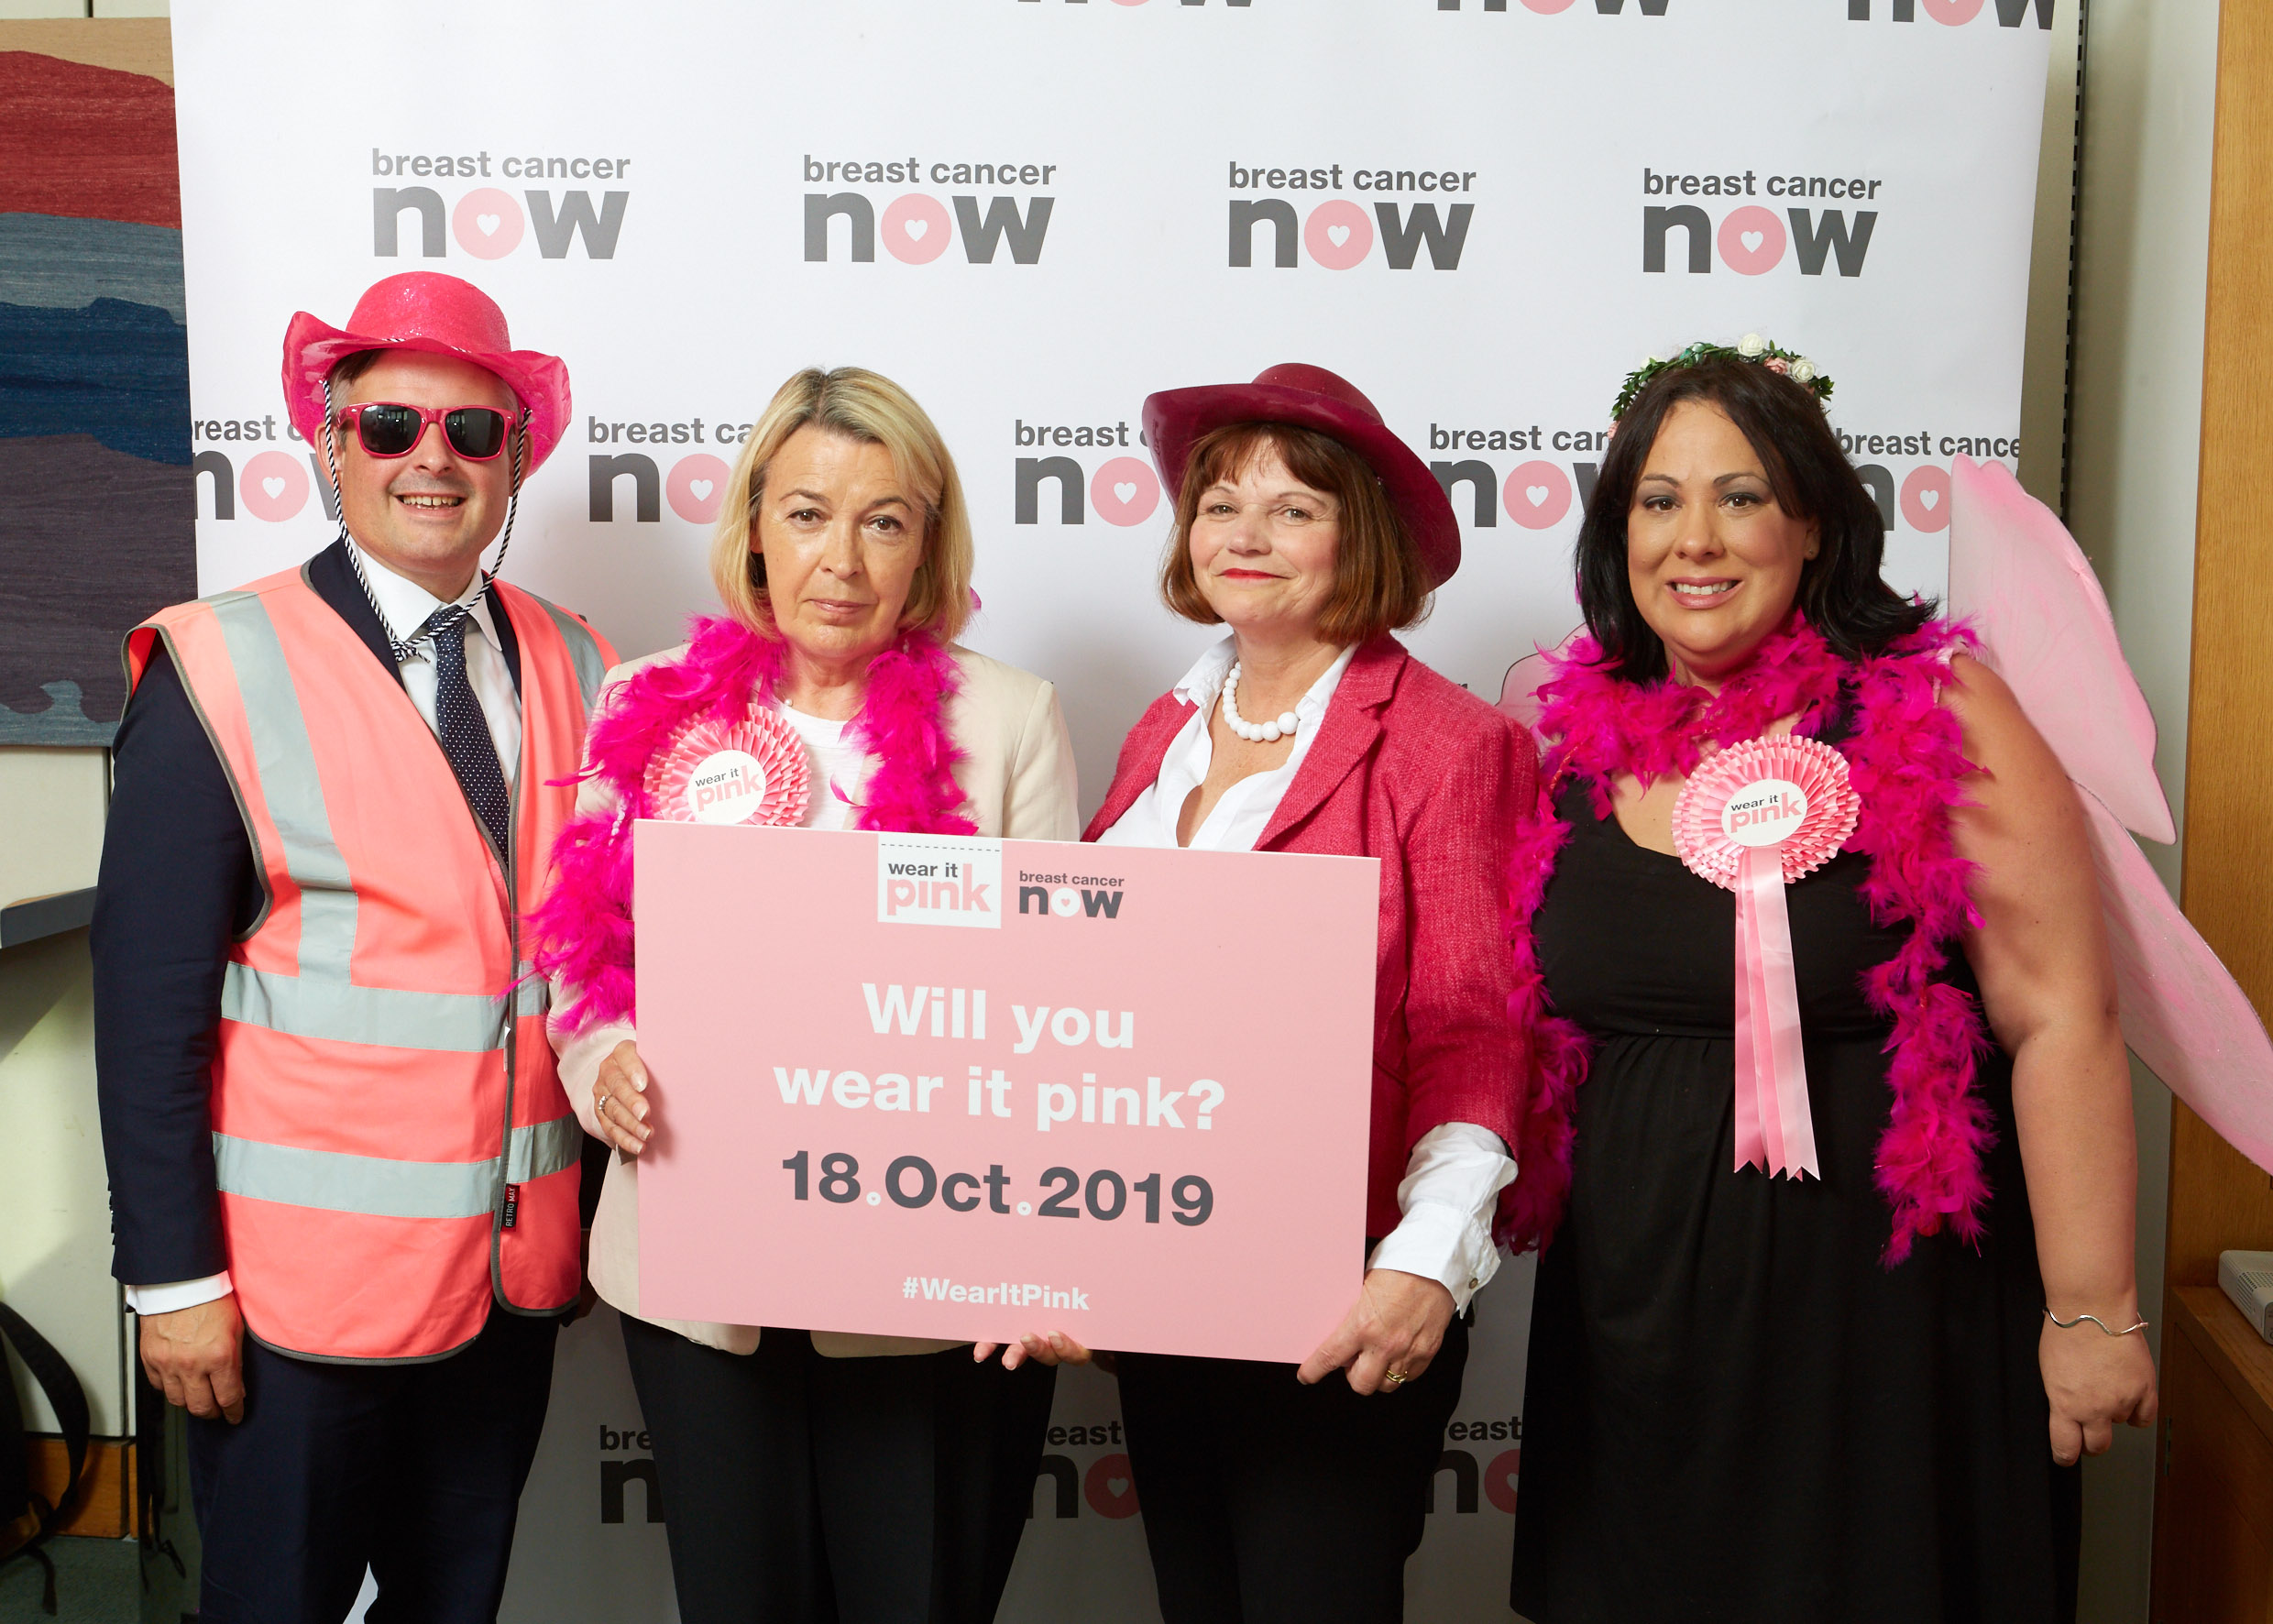 Jon is supporting #wearitpink on Friday 18th October which helps fund vital research and support - Tuesday September 10 2019